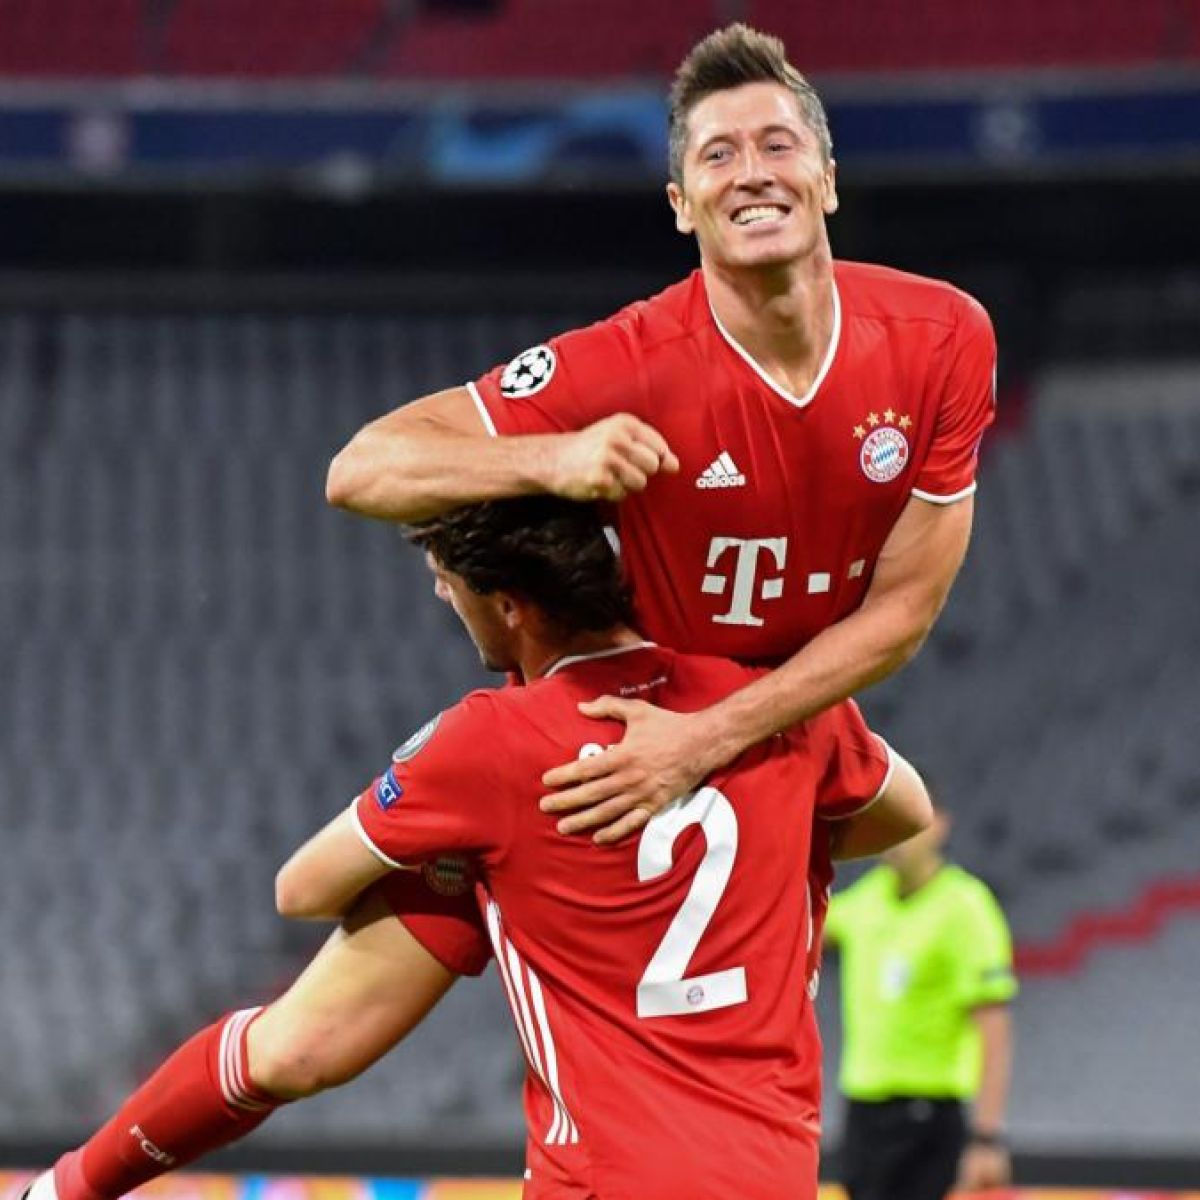 Bayern Munich Complete Formalities With Rout Over Chelsea